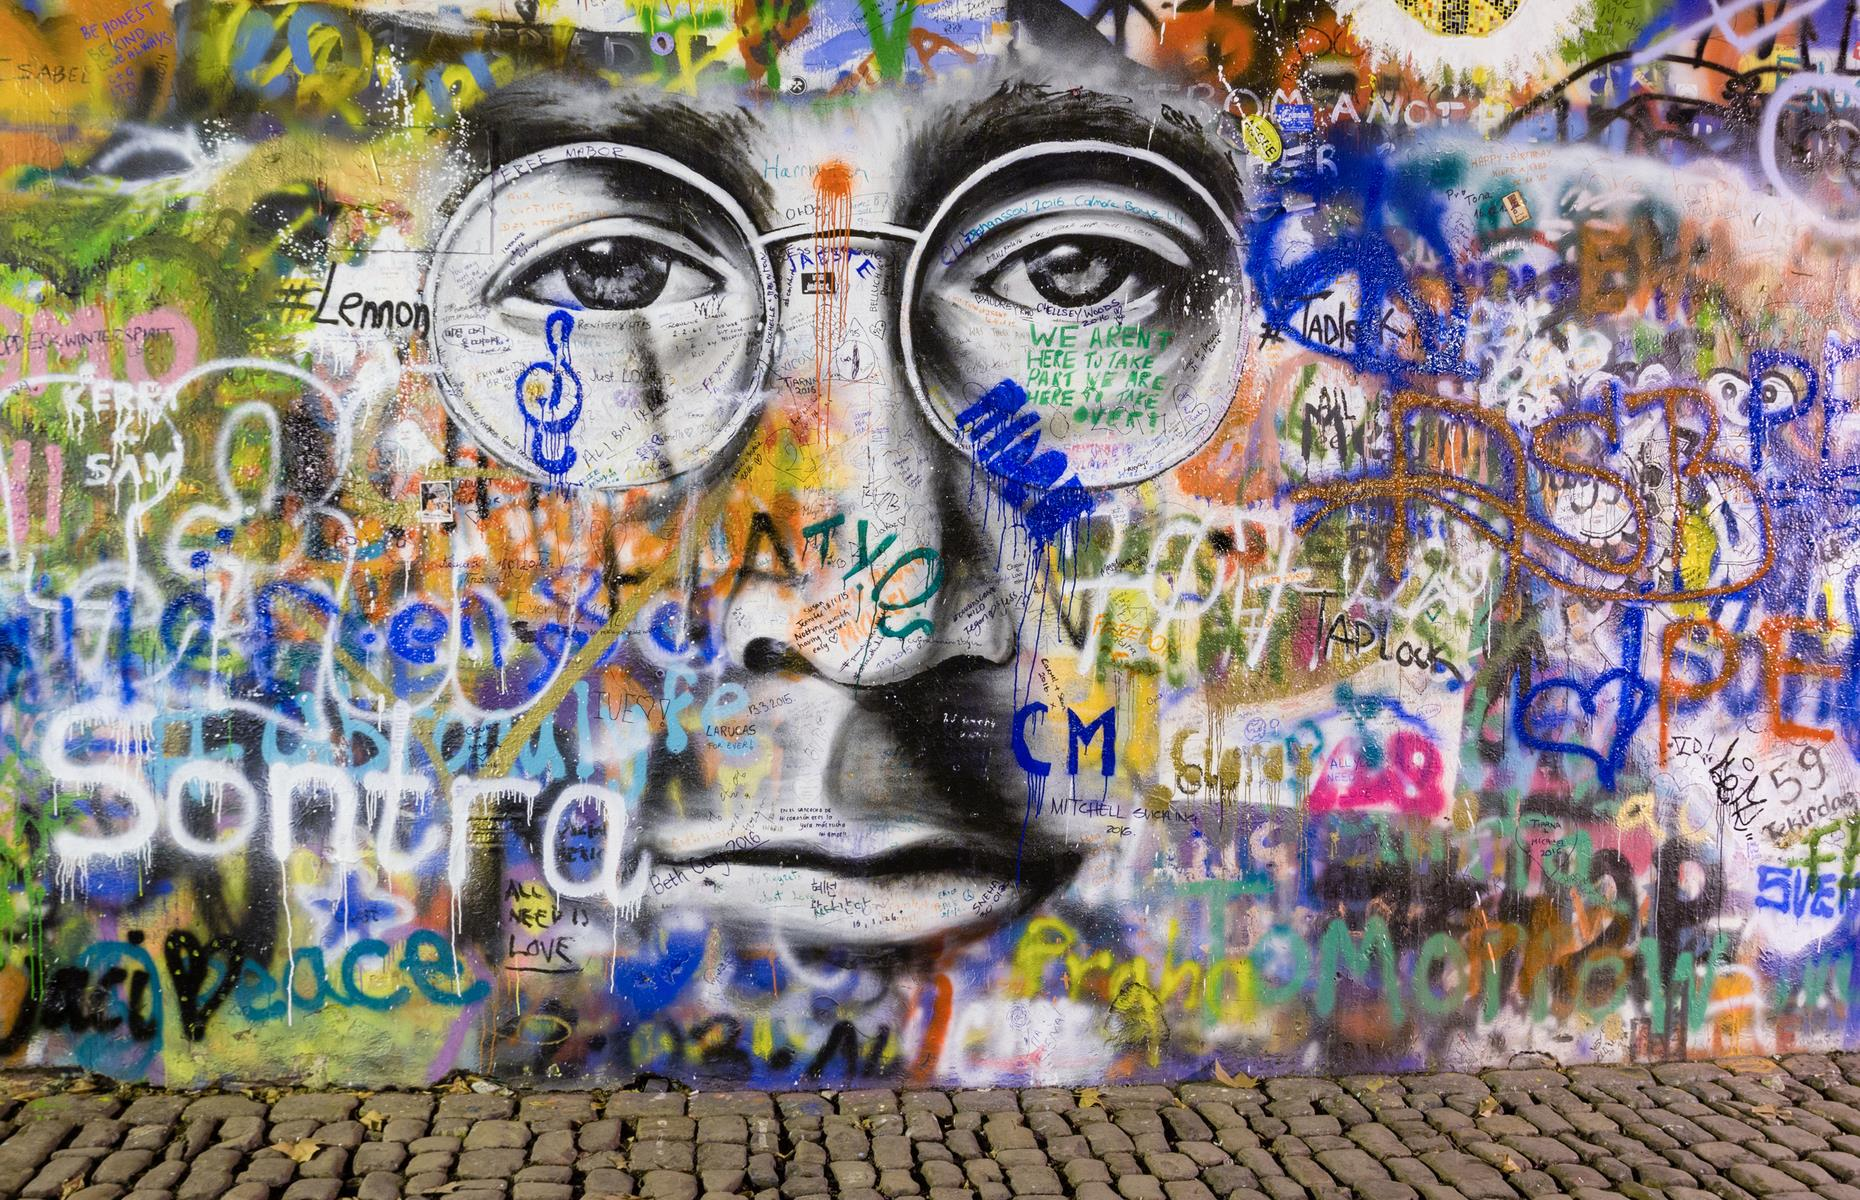 Slide 27 of 31: A long-time haunt for pacifists and dreamers, a wall dedicated to peace, love and John Lennon takes up a quiet corner of Prague. Following the assassination of the Beatles legend in the 1980s, an image of his face was painted on a wall close to the French embassy. Soon after political messages, peace signs and Beatles lyrics were scribbled alongside it, until it was a kaleidoscopic mural that's lasted for decades.